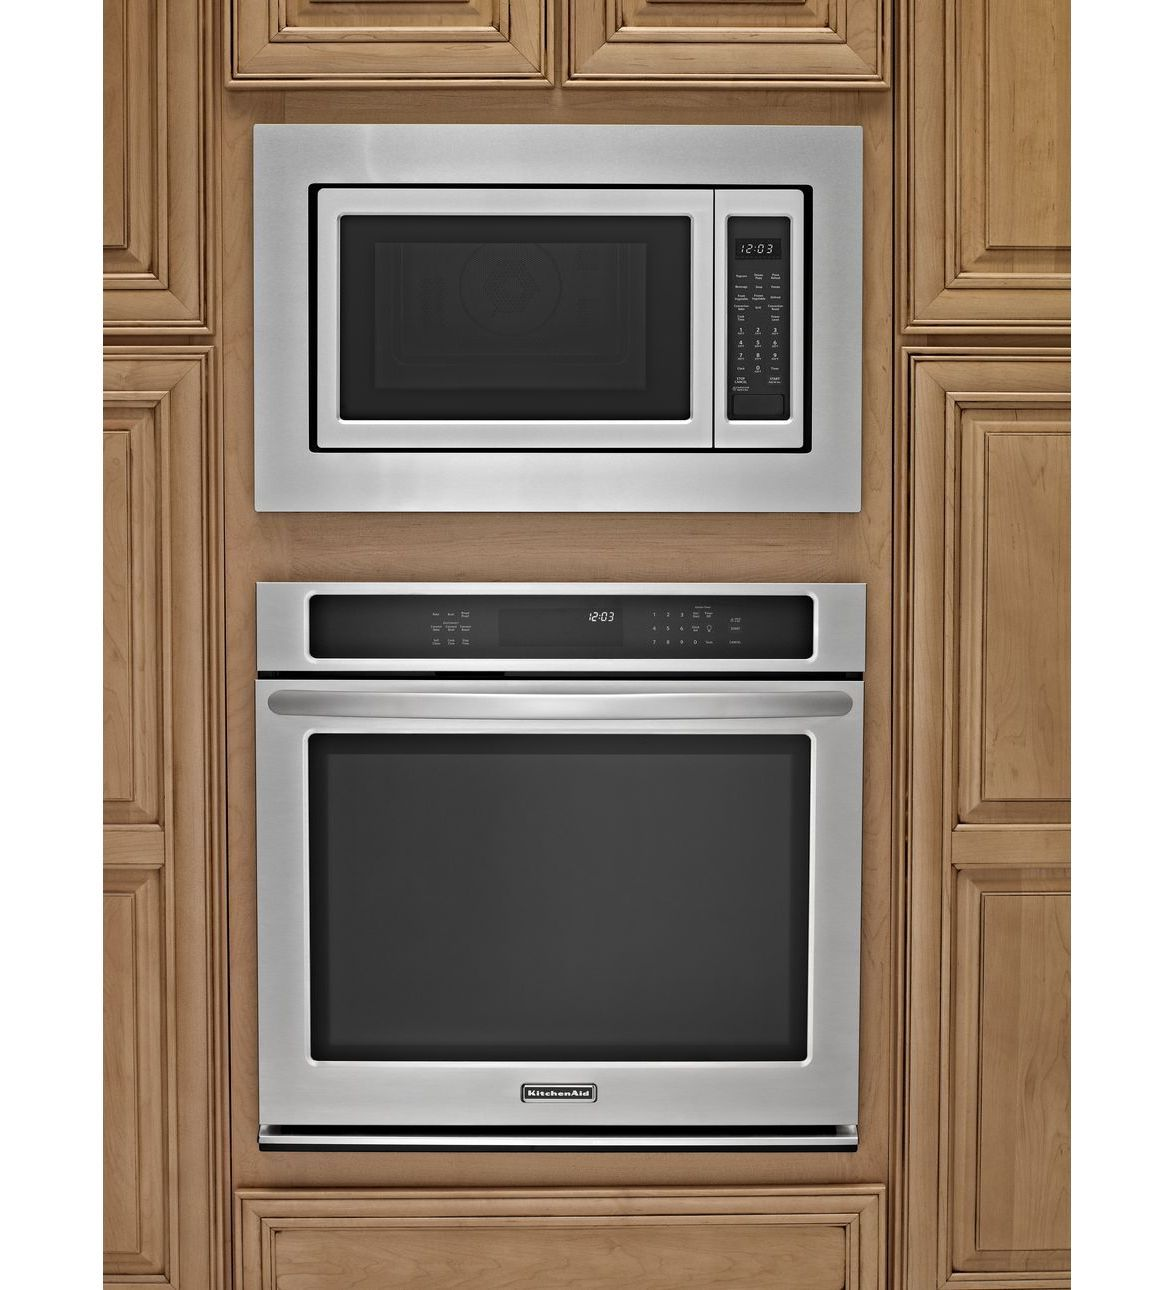 1200 Watt Countertop Convection Microwave Oven Architect Series